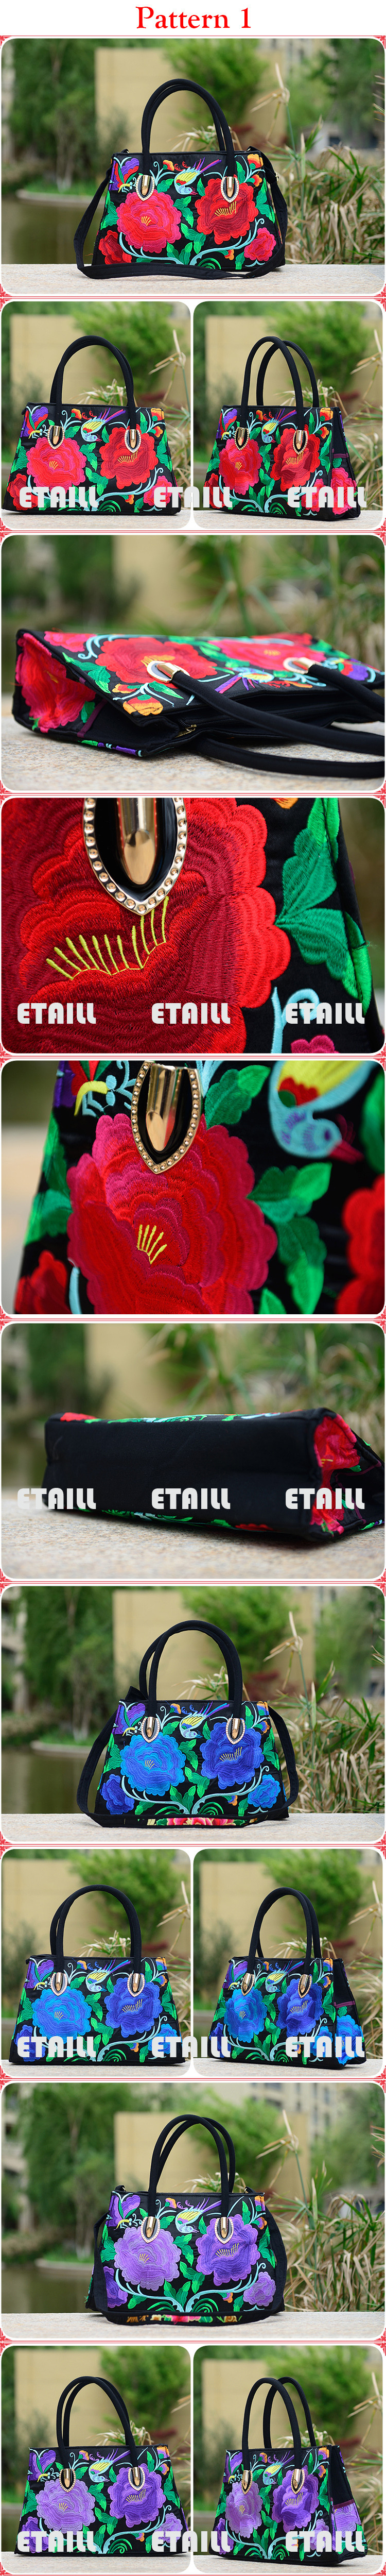 Lady shopping bags embroidered